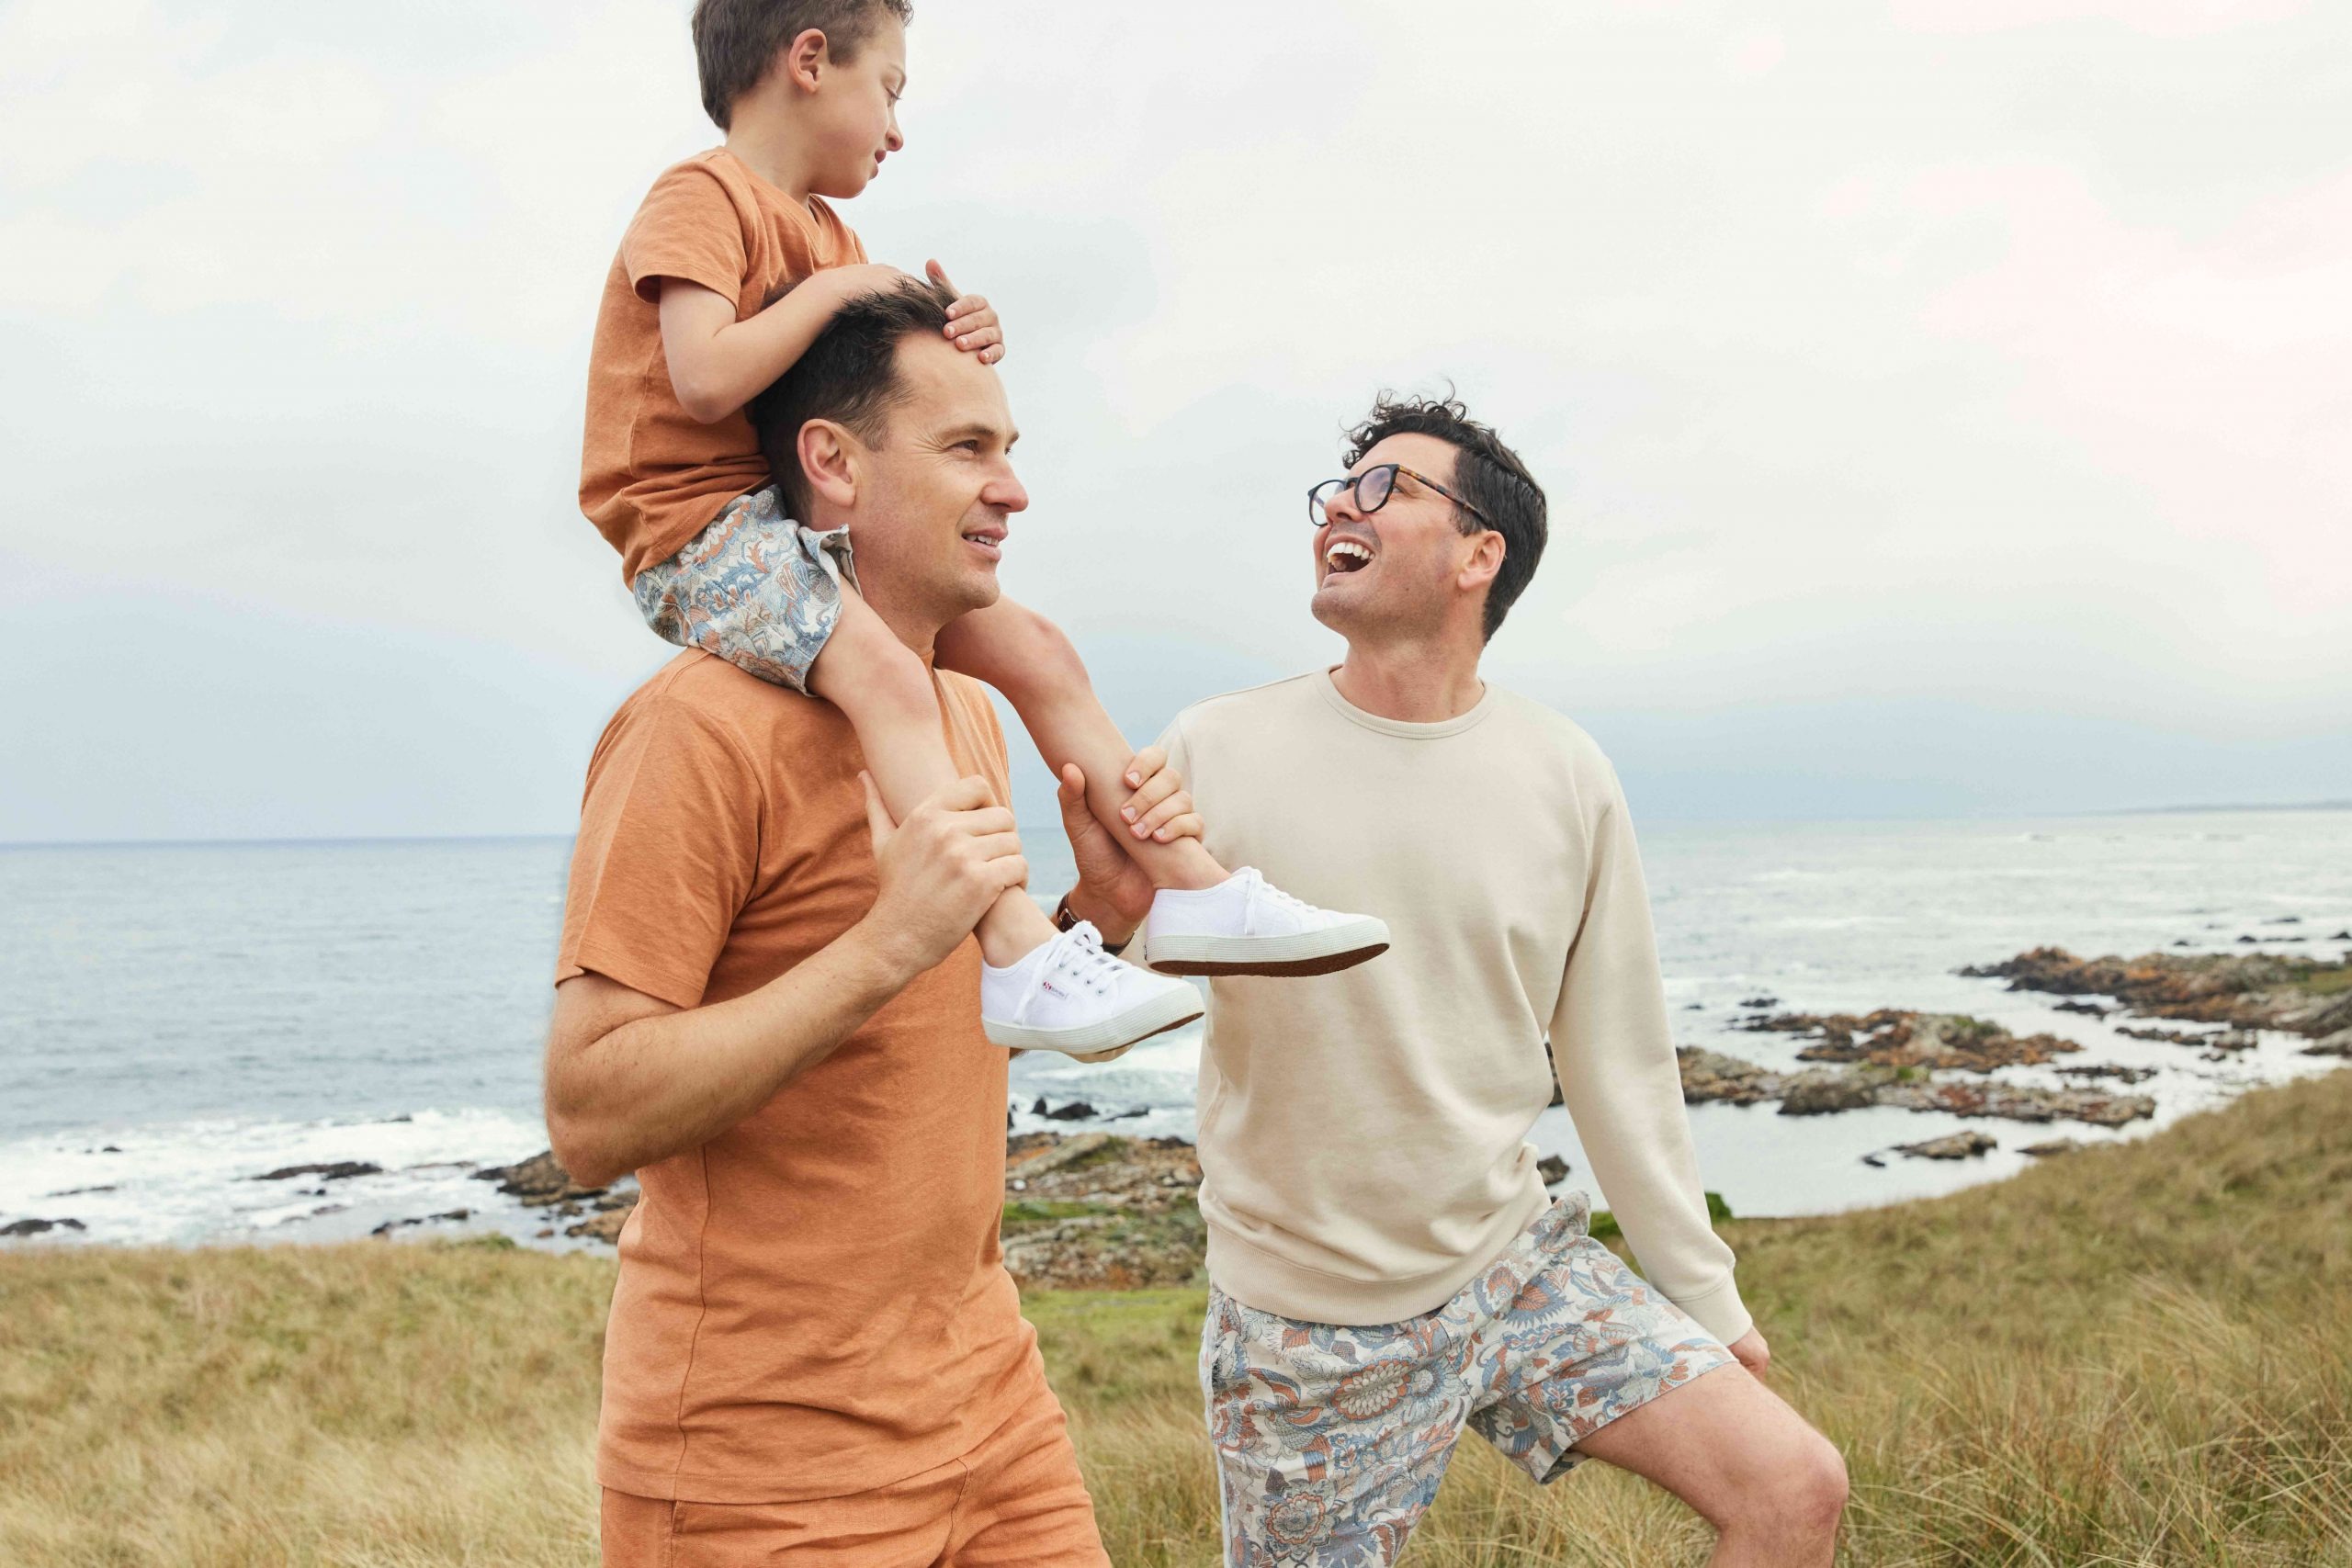 The Co-Founder of Kittawa Lodge AaronSuine On Father's Day & Swapping City Life For King Island